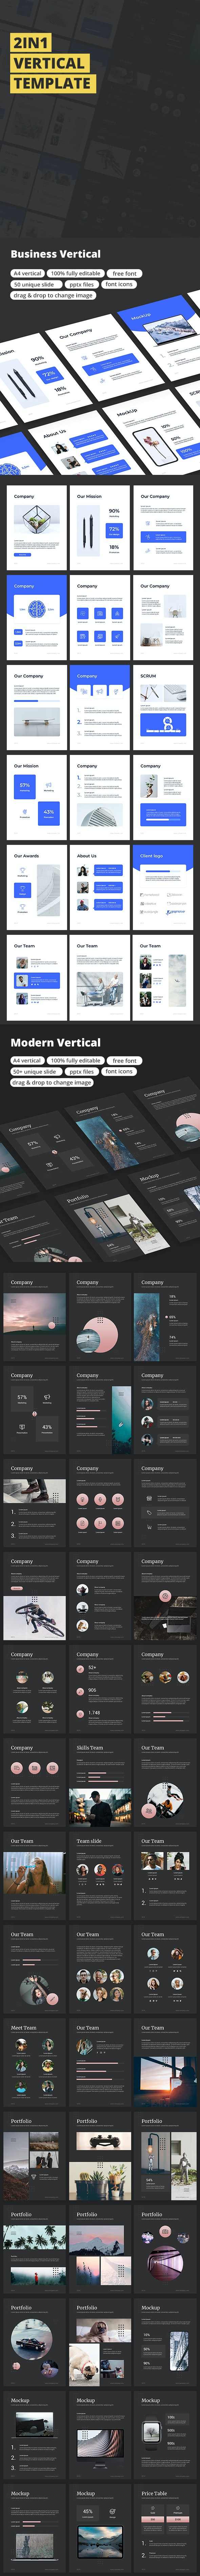 2in1 Vertical Template - Business PowerPoint Templates